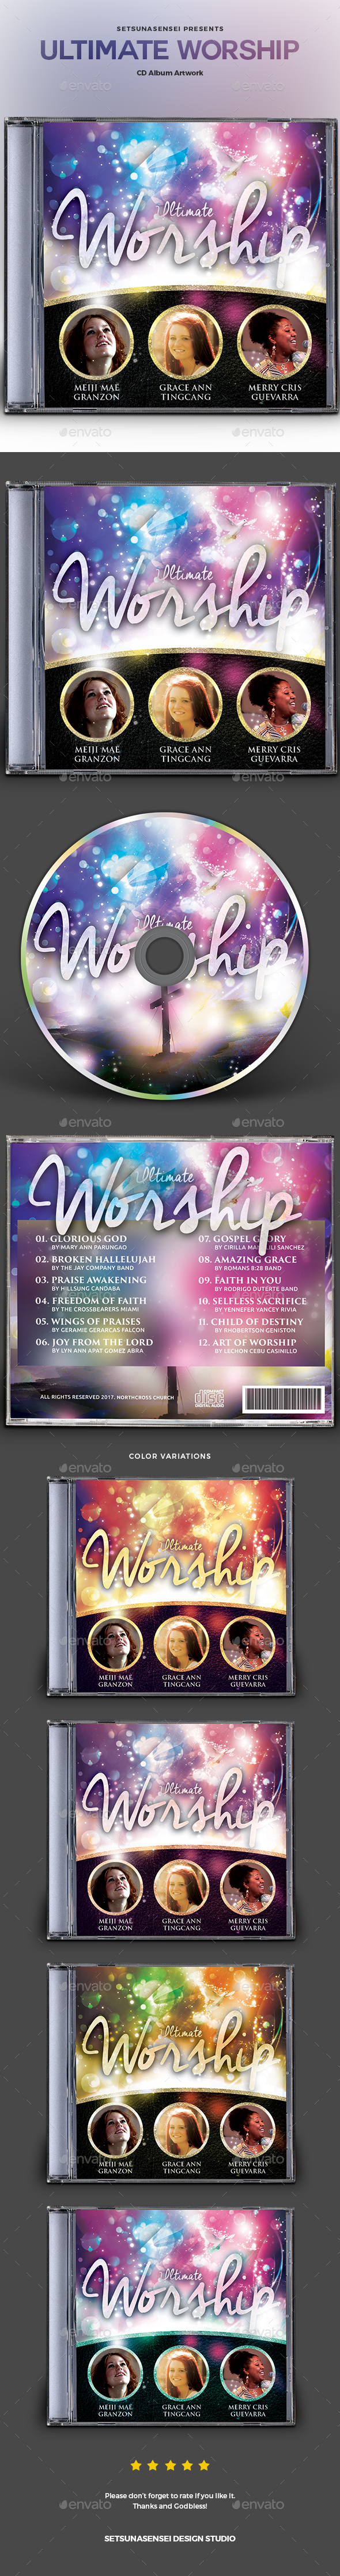 GraphicRiver Ultimate Worship CD Album Artwork 20625090